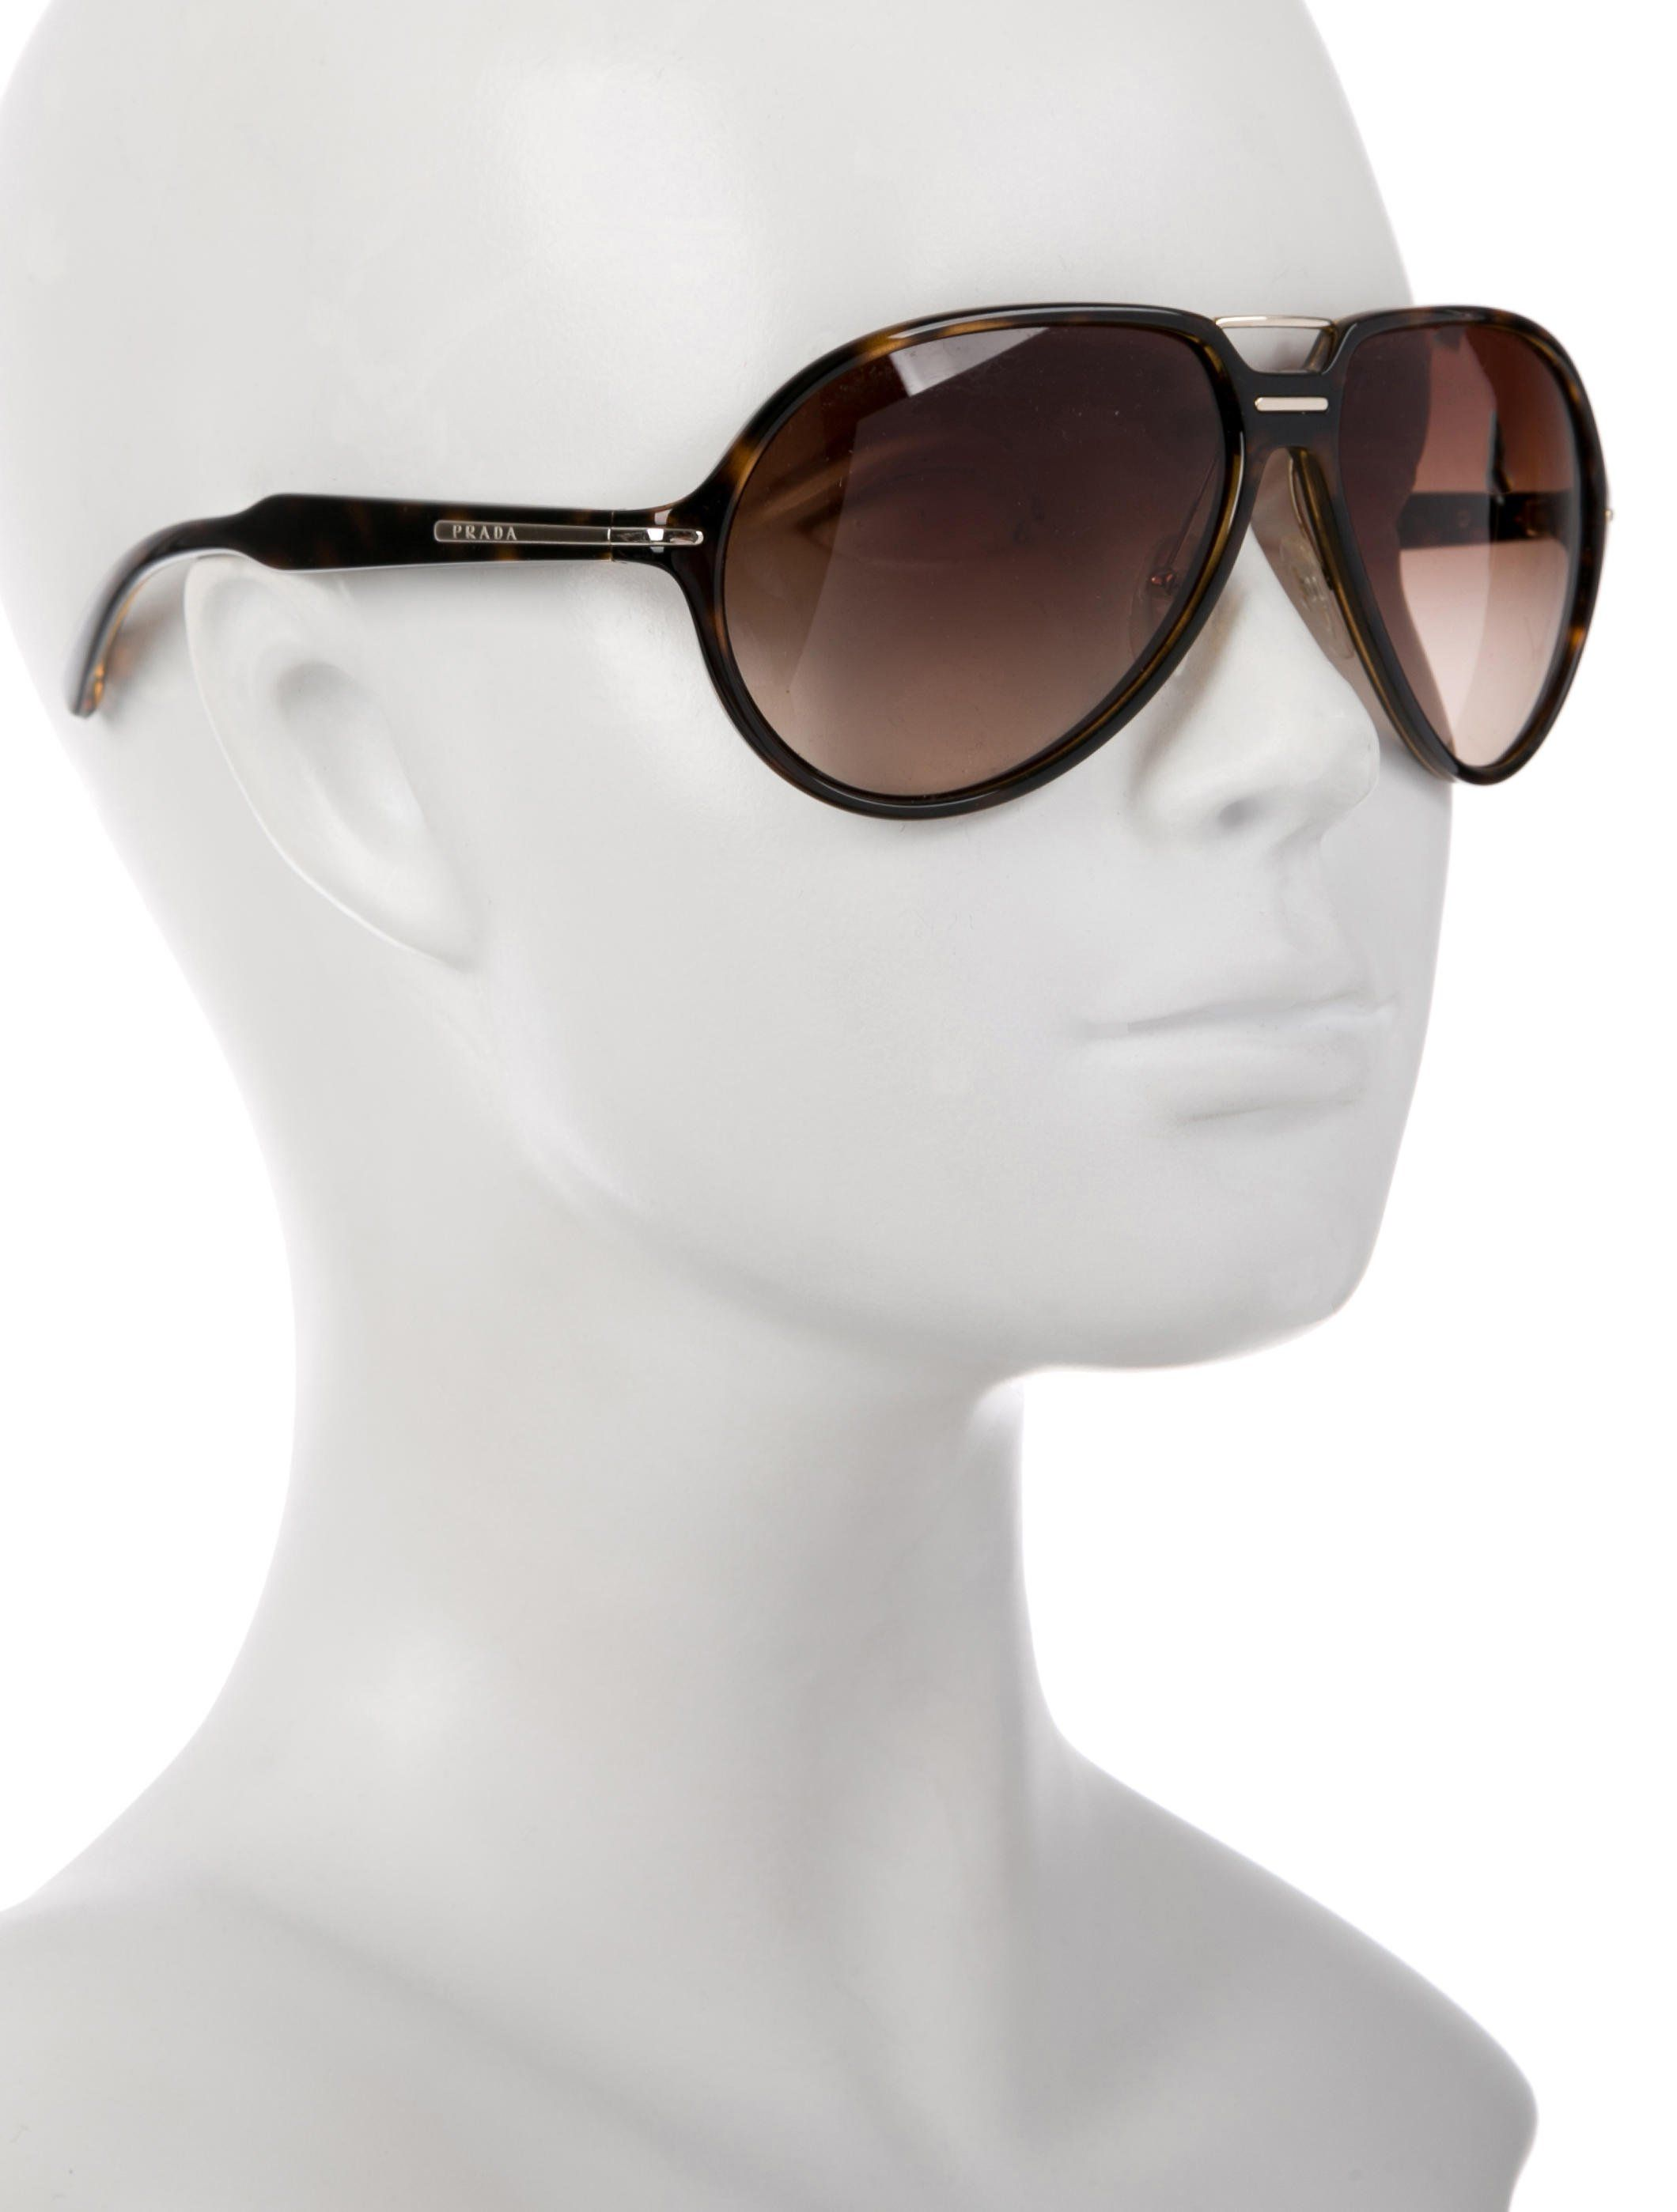 503da046fb27 Men's brown acetate Prada aviator sunglasses with round gradient lenses,  top bar, nose pads and logo at temples. Includes case and authenticity card.